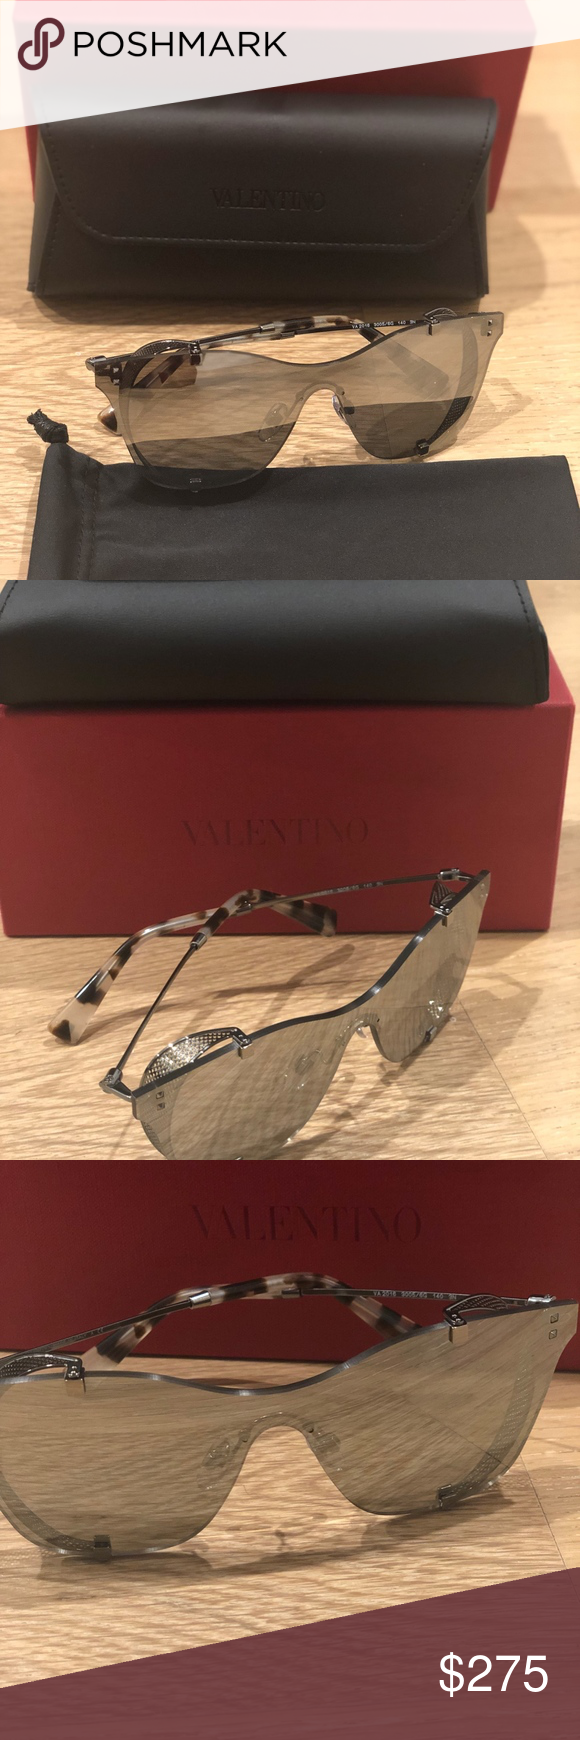 f2632098eced NEW Valentino Square Side-Blinder Sunglasses. Brand New! Never worn ...